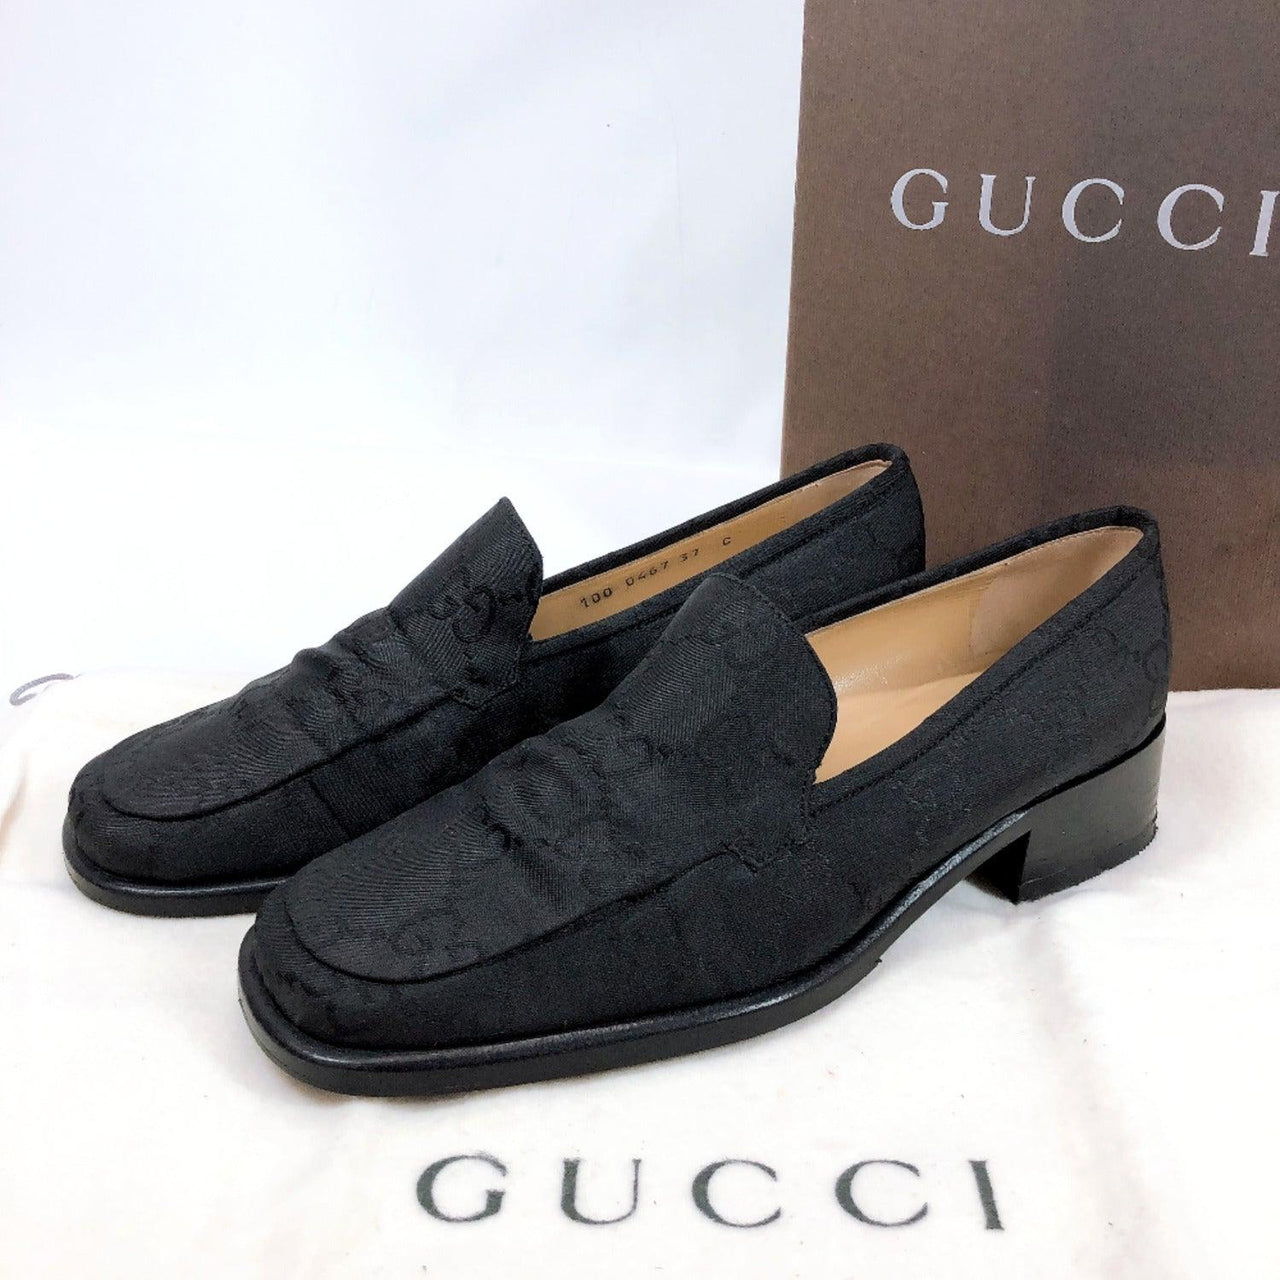 GUCCI loafers Nylon black Women Used